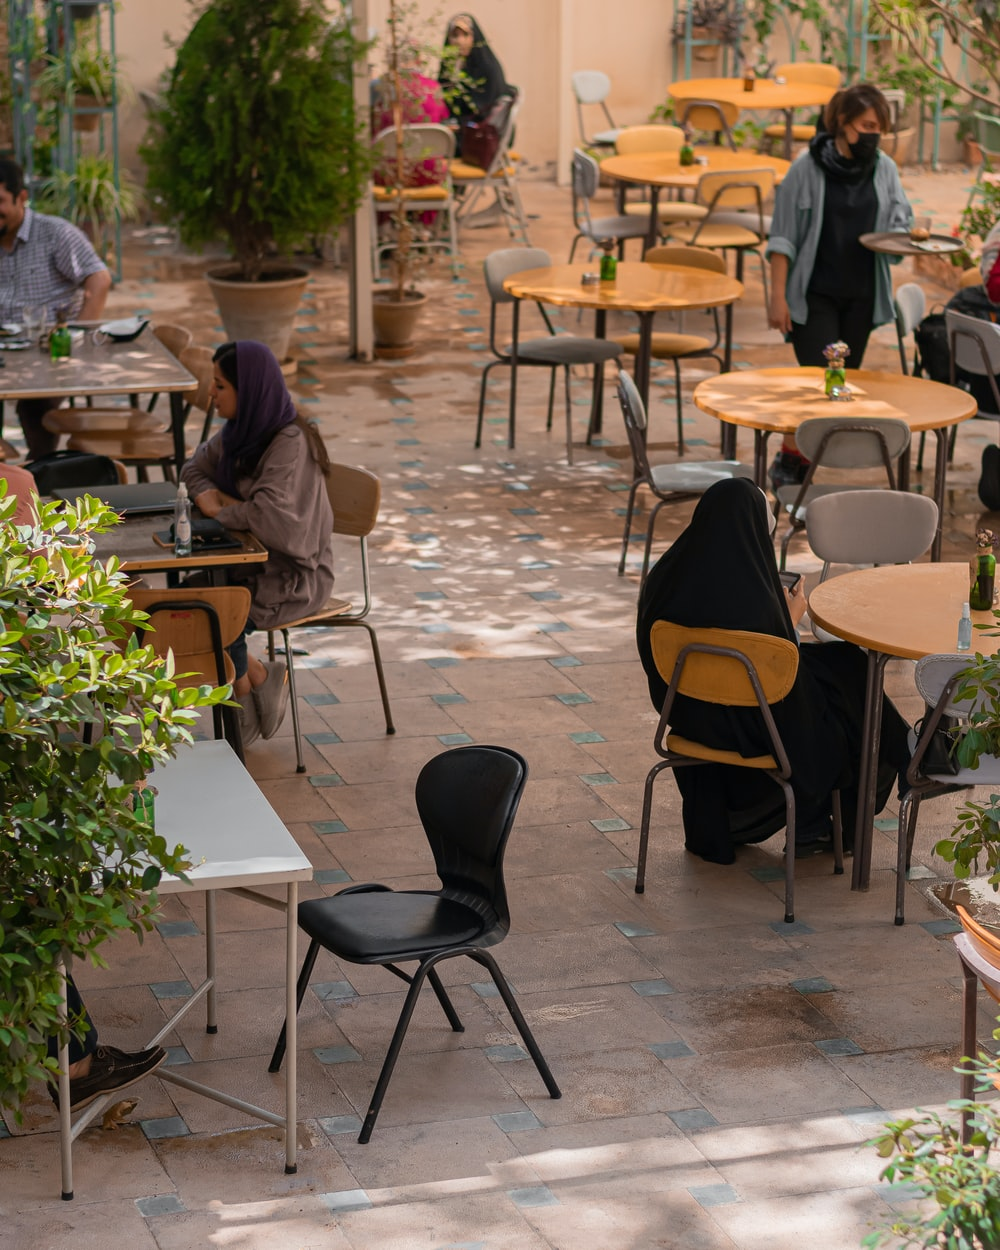 people sitting on chairs near table during daytime